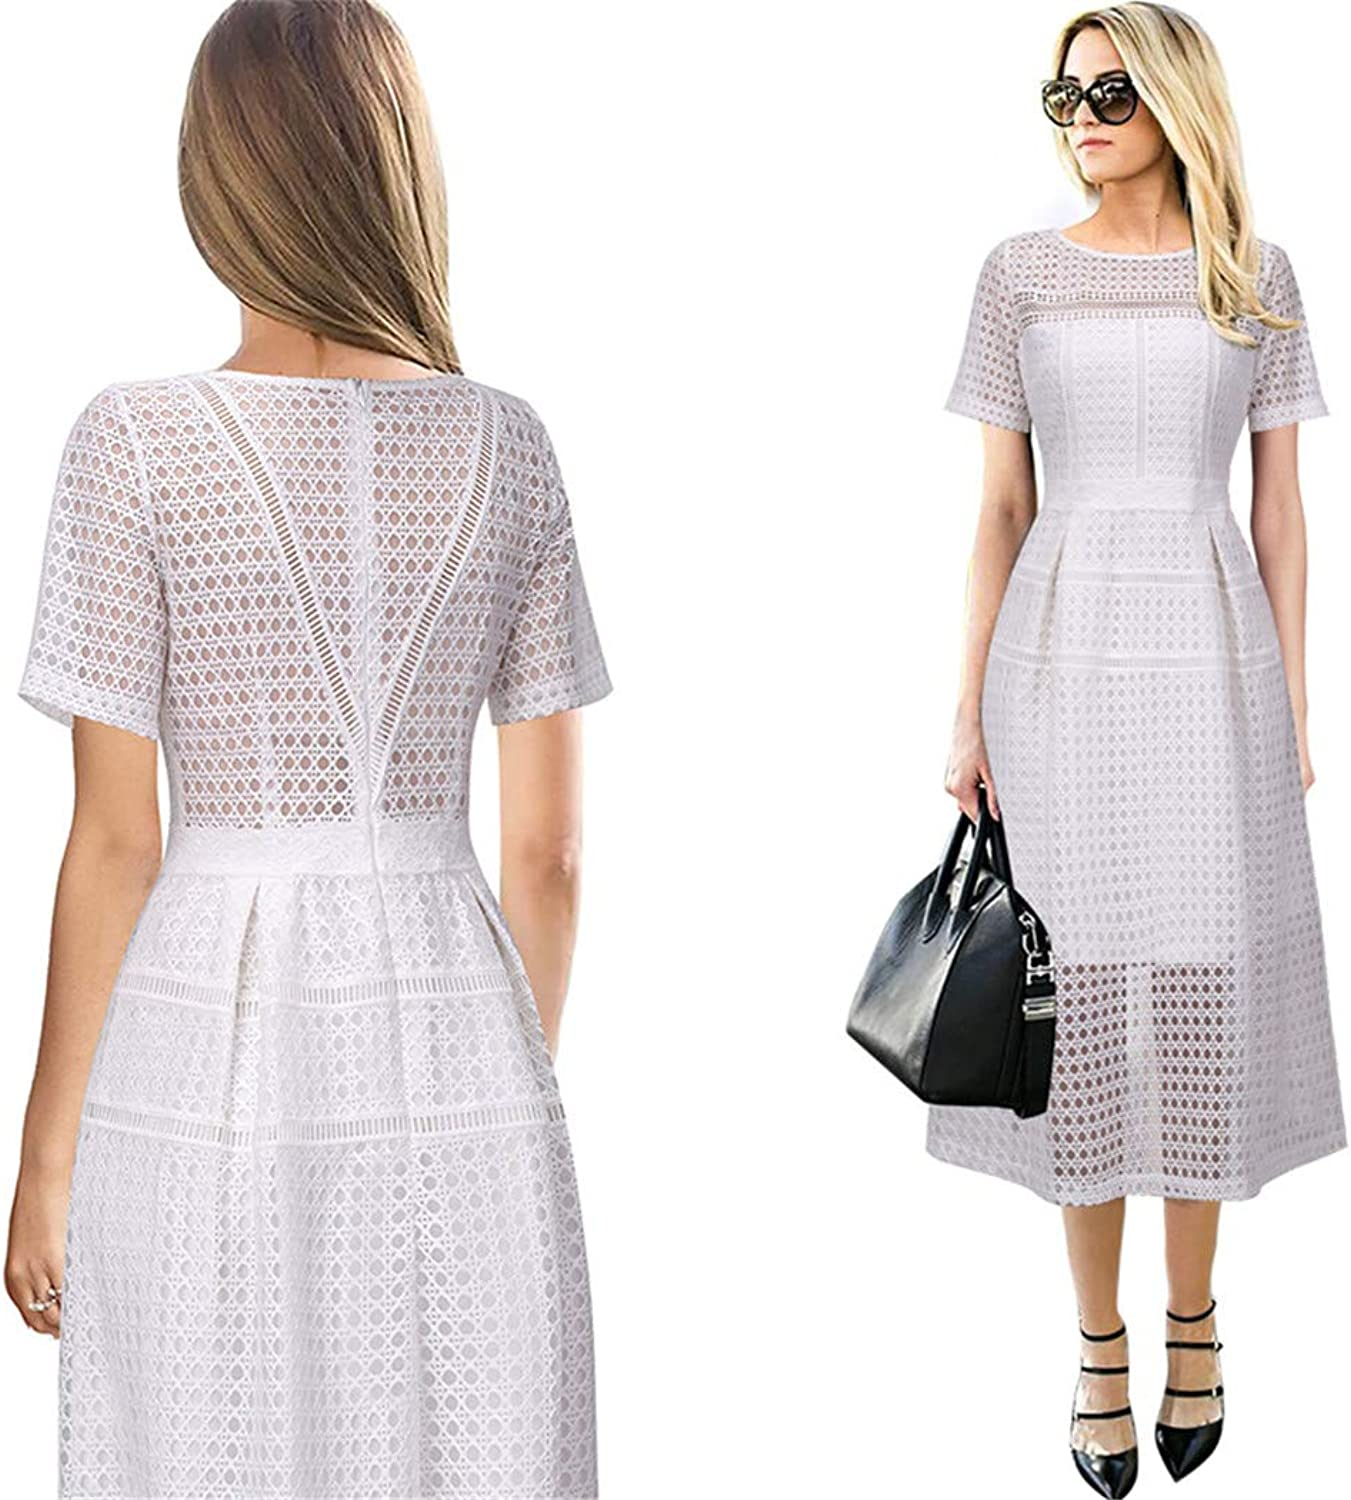 Eyelet Mesh Patchwork Party Special Occasion Fit and Flare Midi Dress